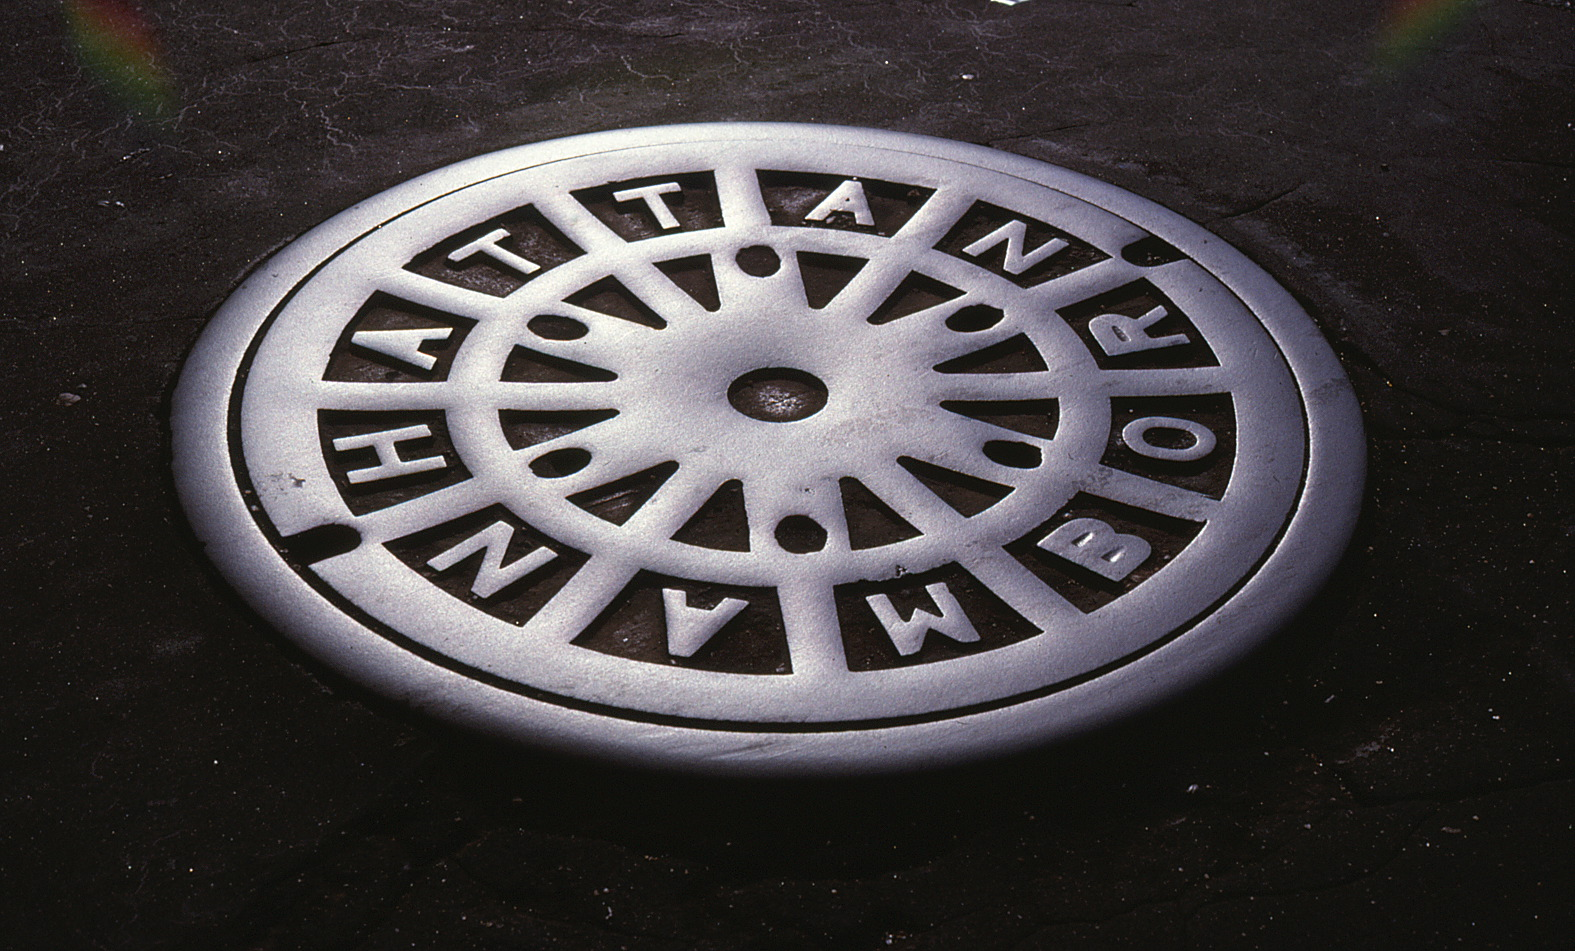 Manhole cover with Manhattan spelled out on it.